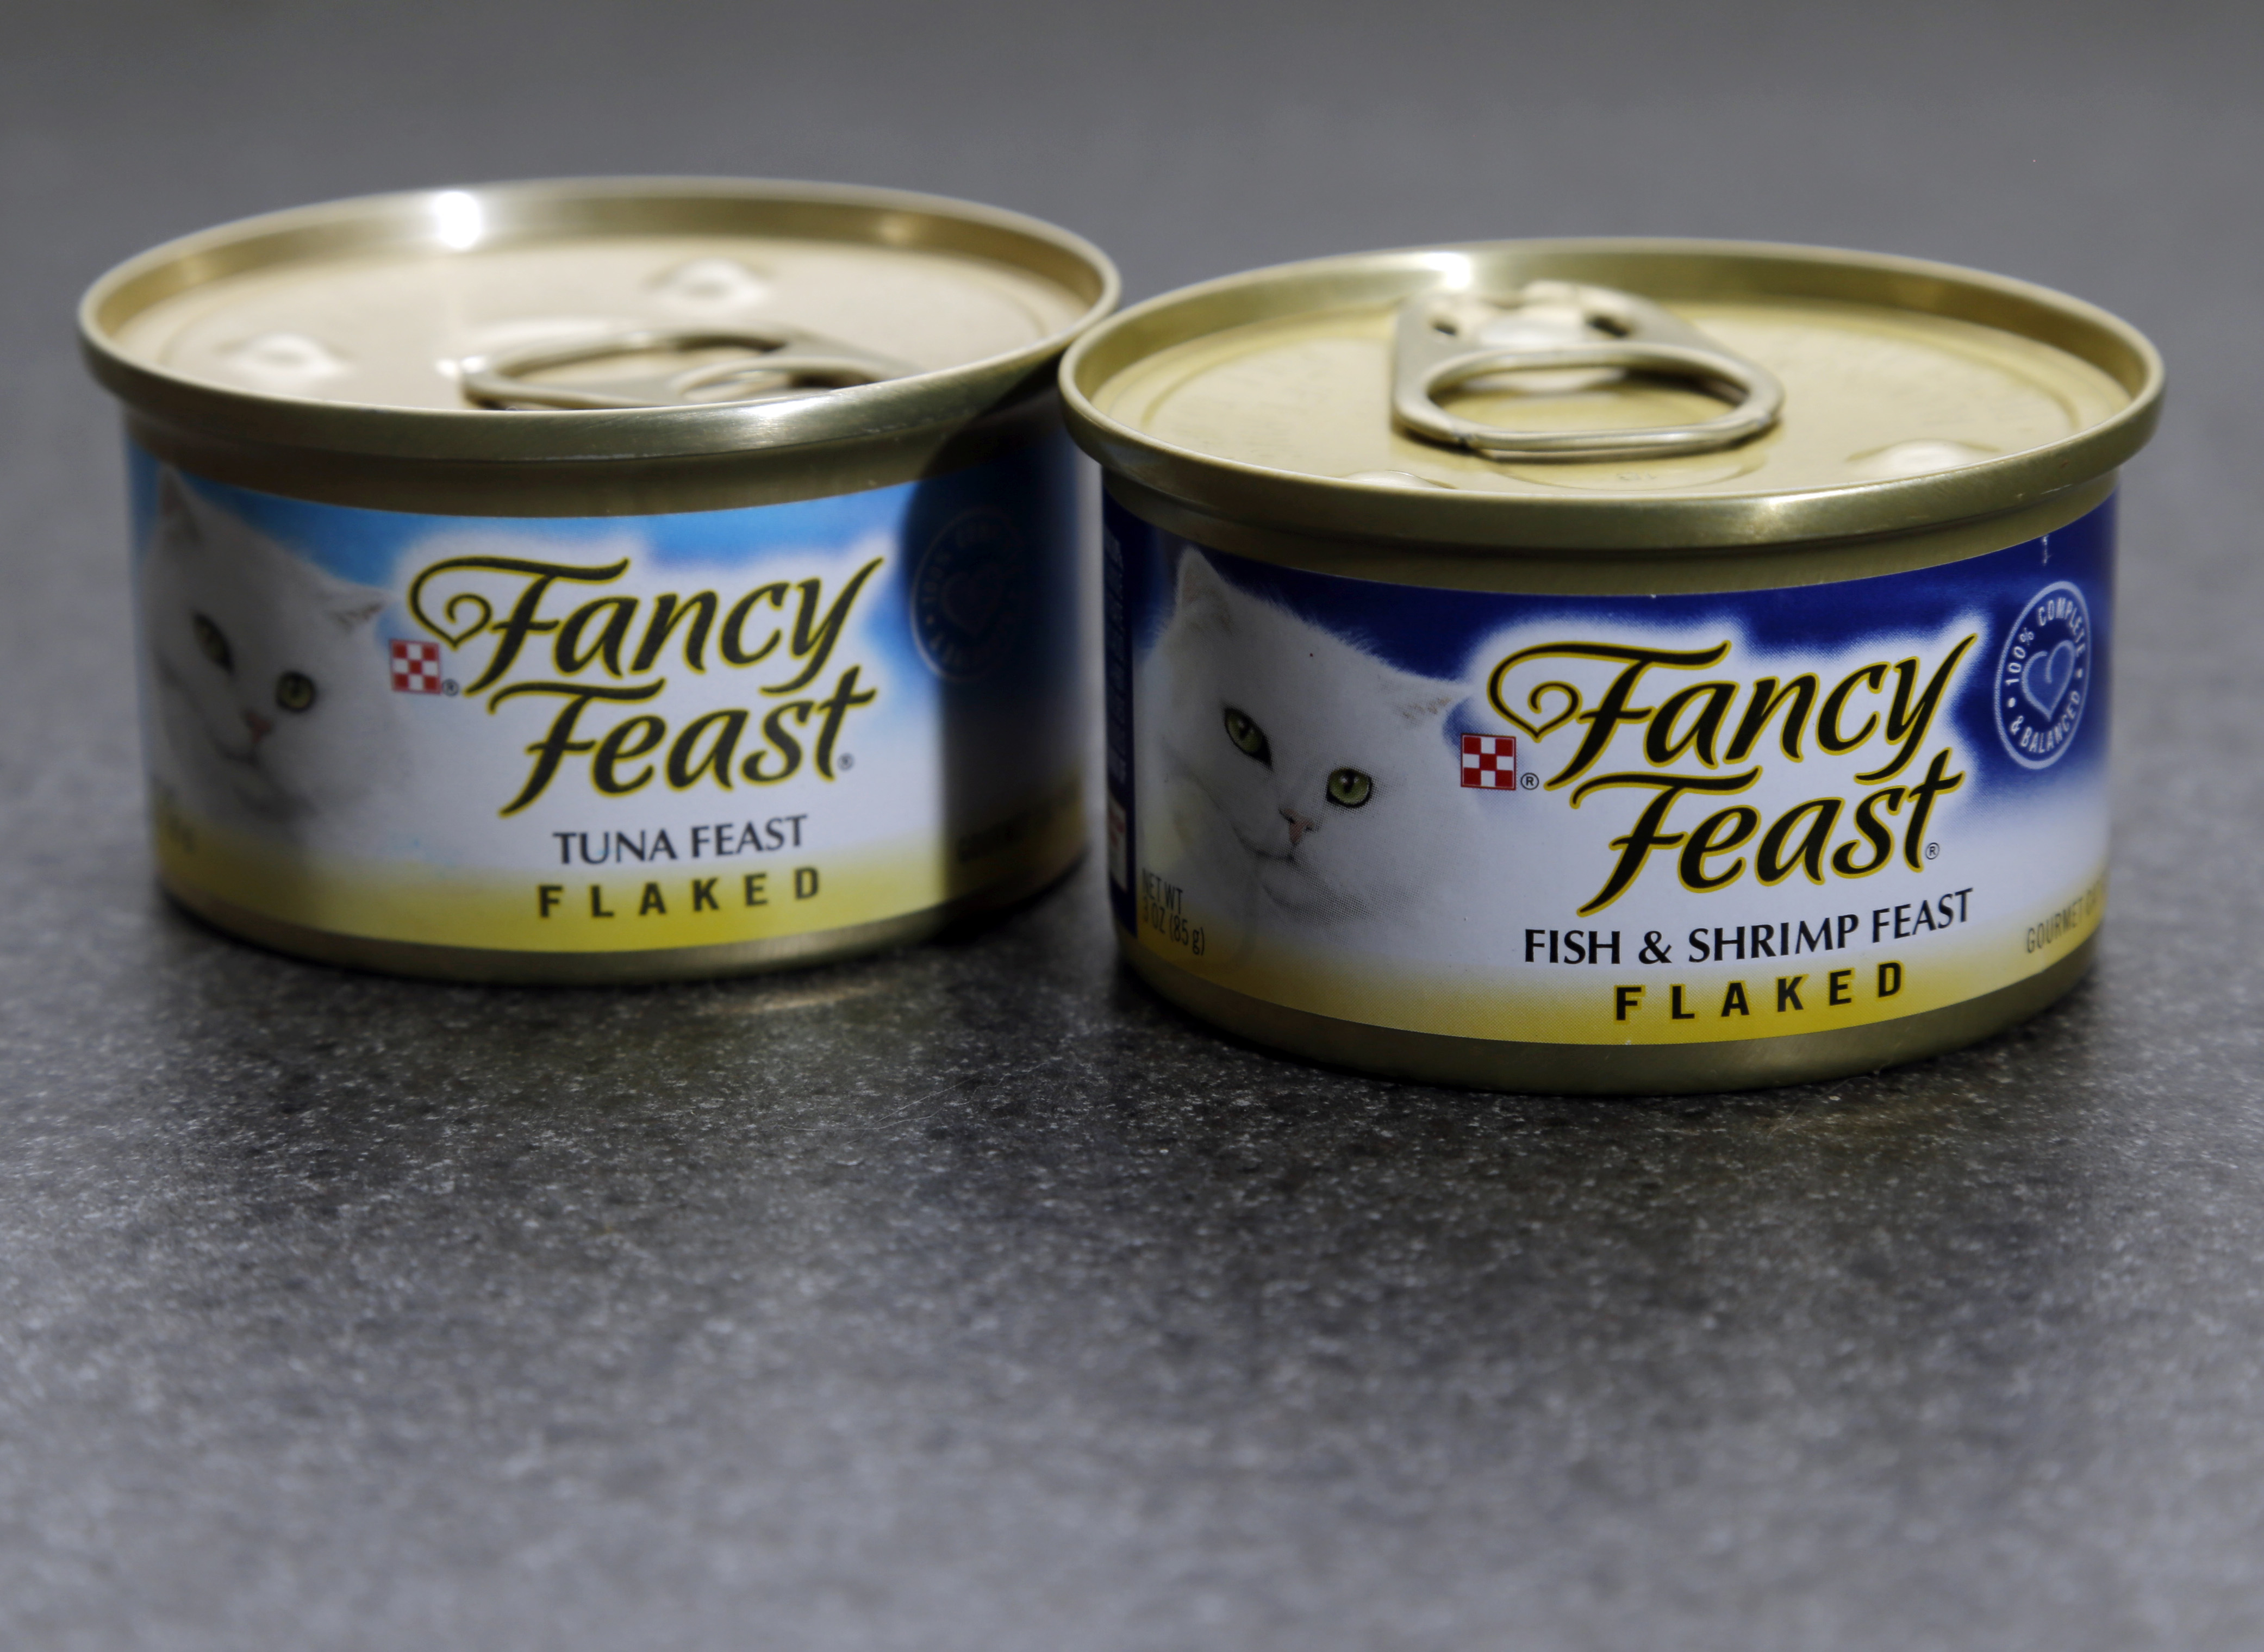 Fancy Feast cat food cans are photographed in Boston on March 19, 2015.